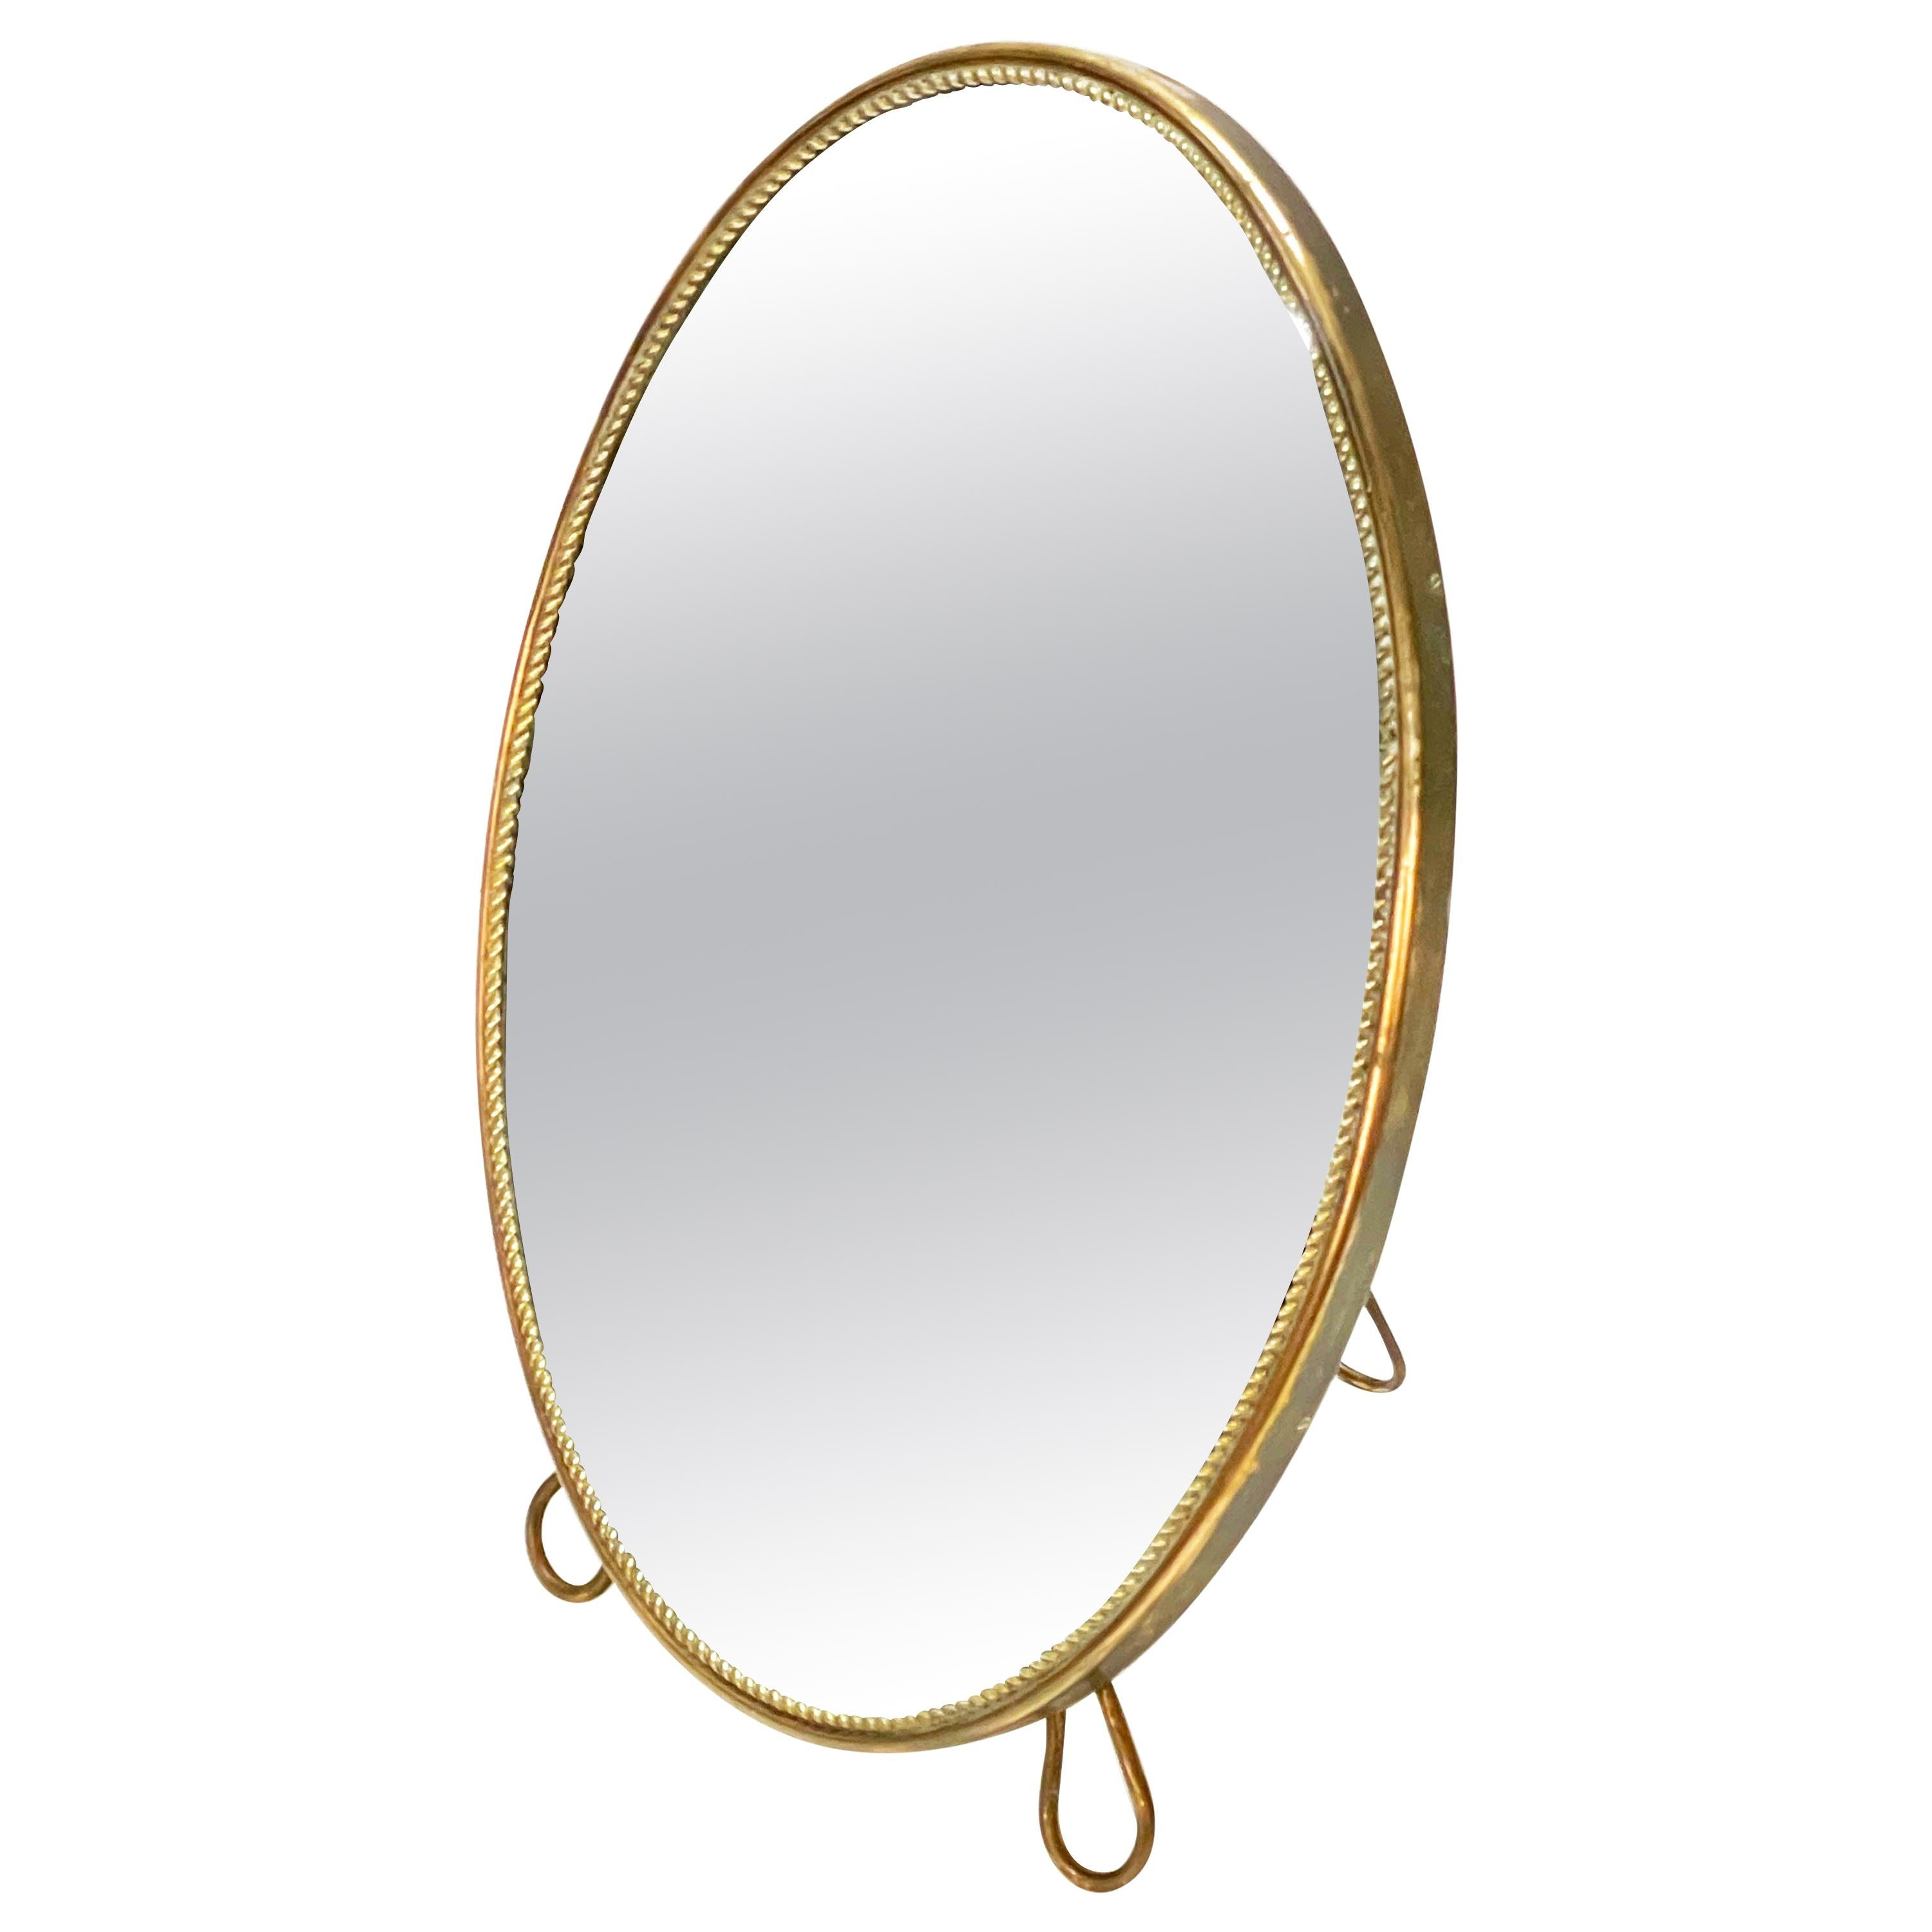 Midcentury Adjustable Vanity Italian Oval Table Mirror with Brass Frame, 1950s